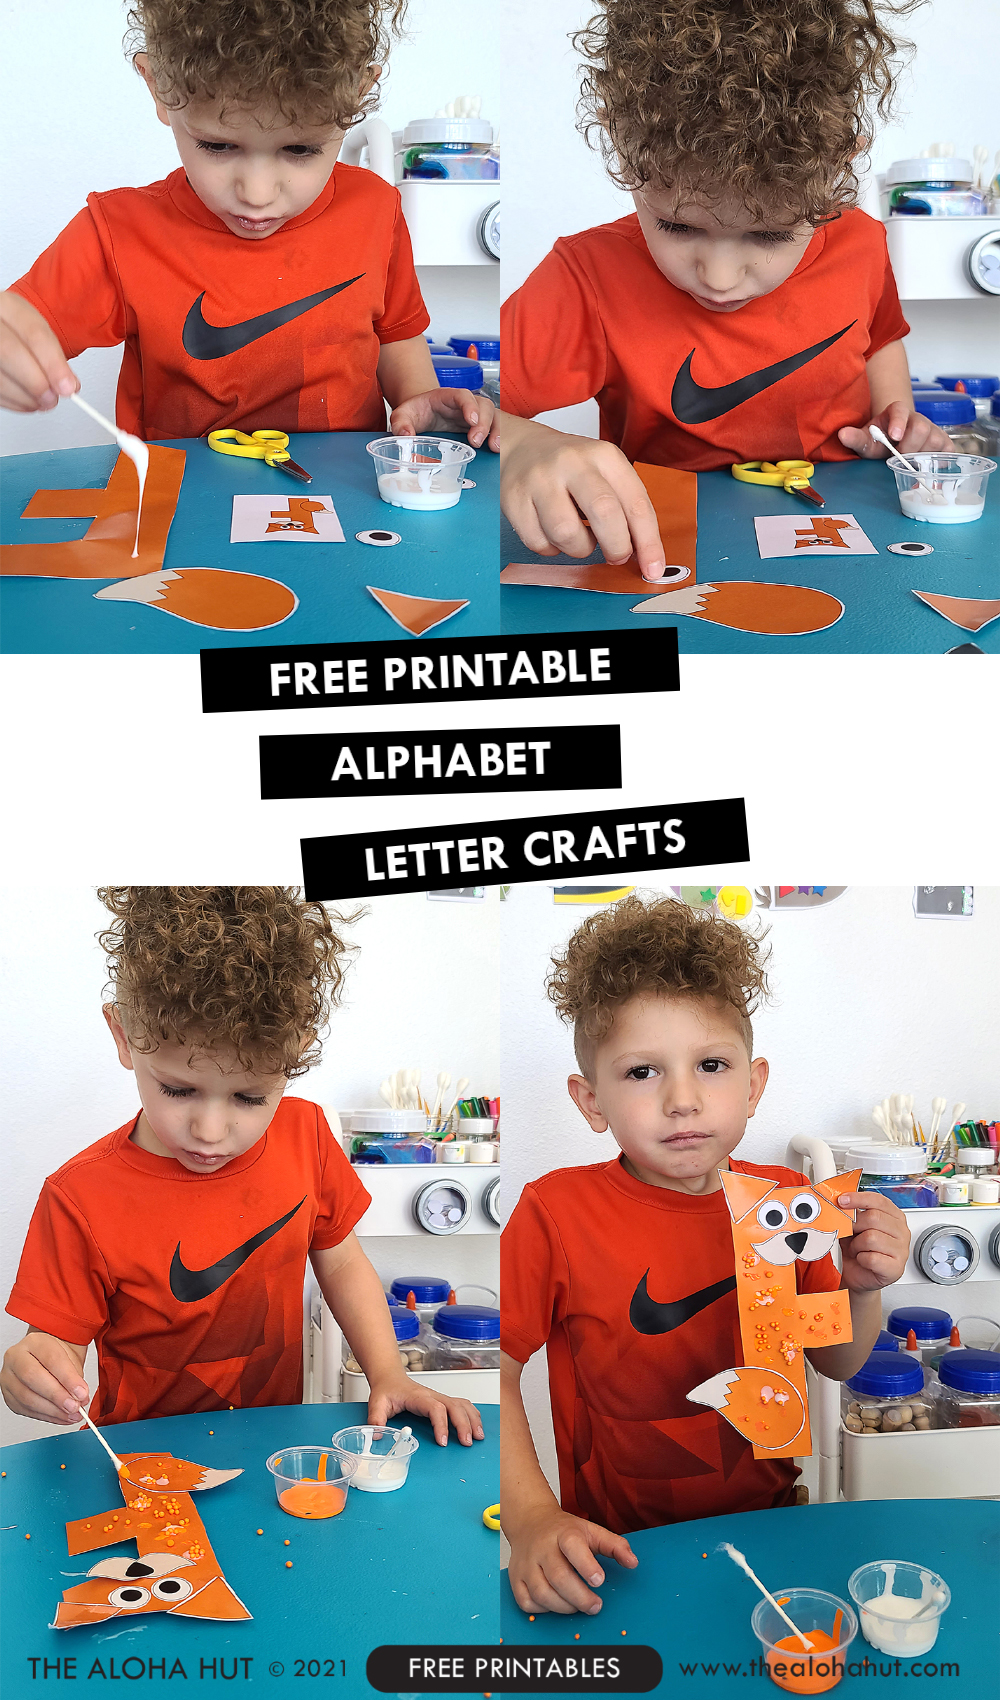 Alphabet Letter Crafts - Letter F - free printable 2 by the Aloha Hut